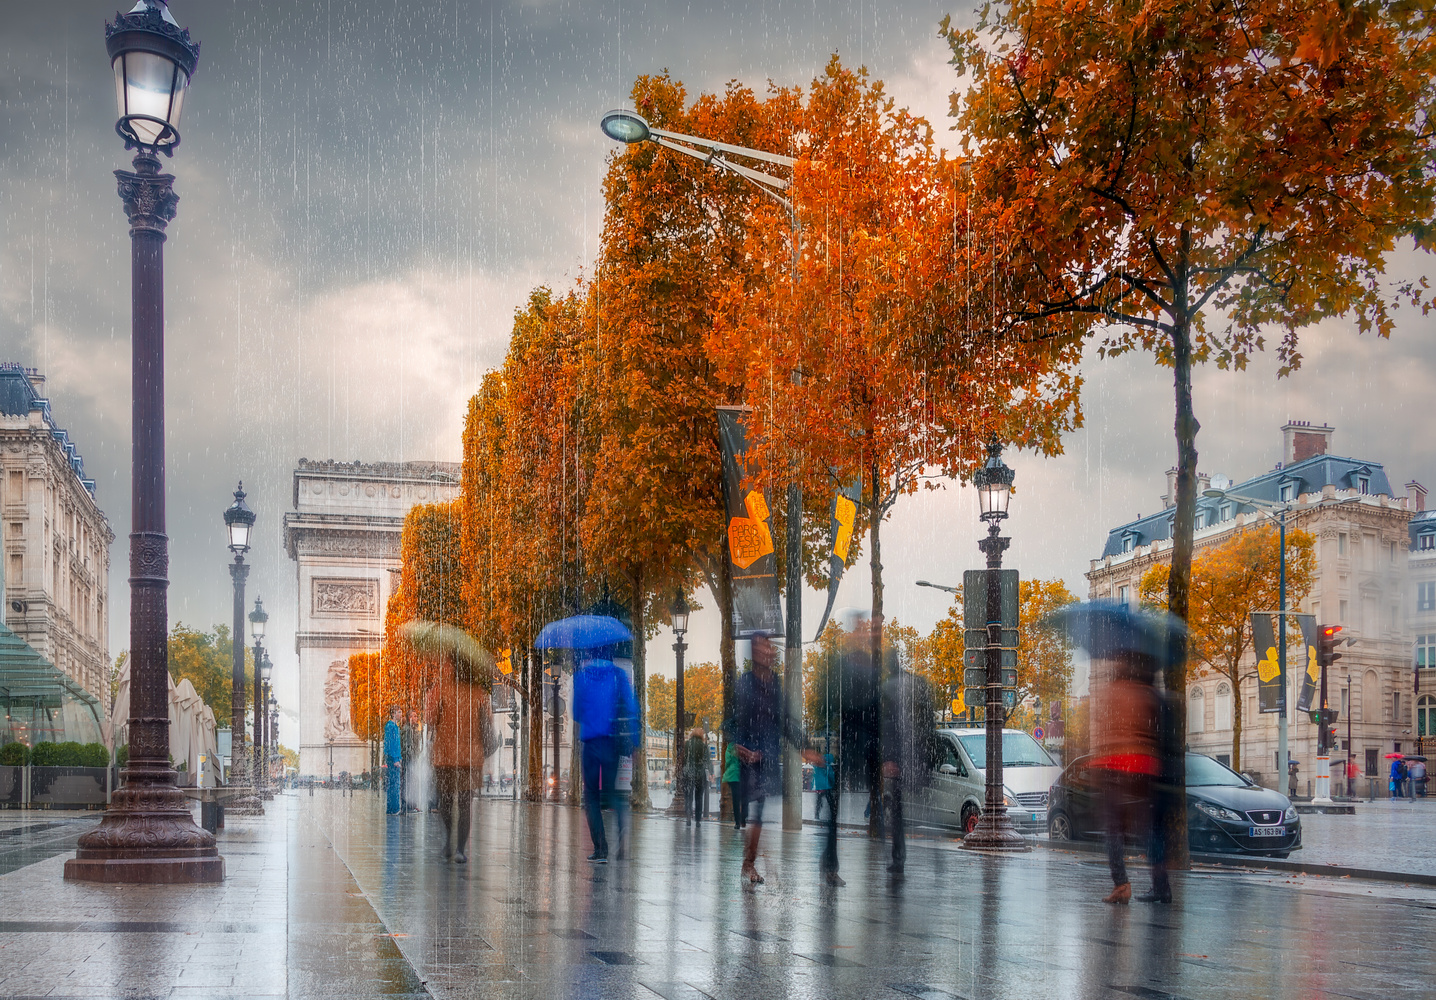 Paris Rain by Alex Hill